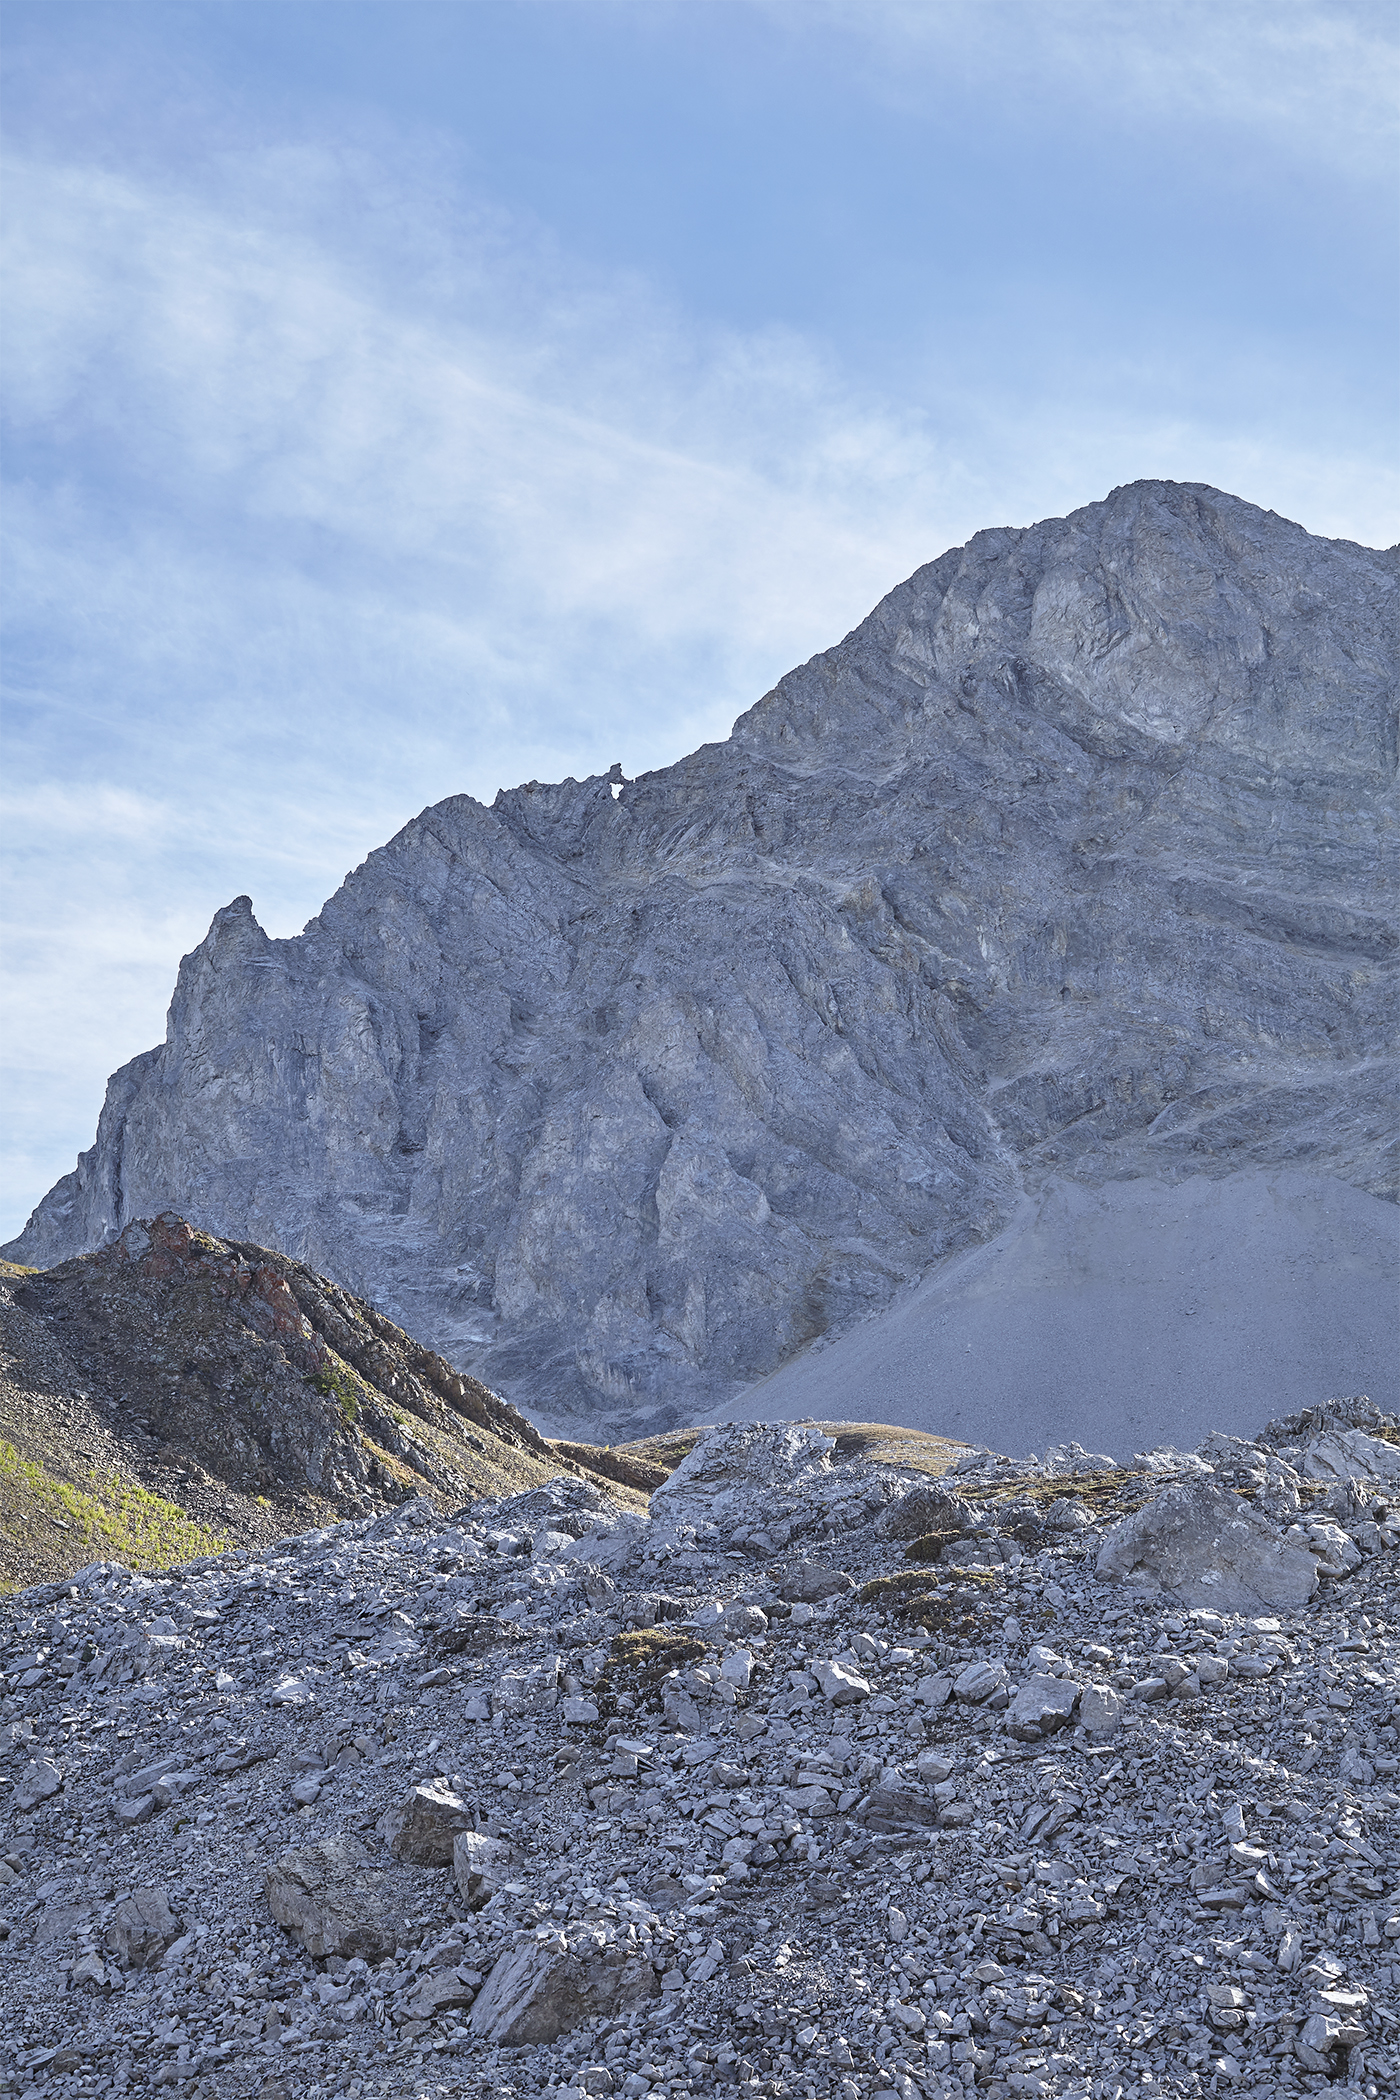 Looking at Mount Tyrwhitt's sheer north-east face from Pocaterra Cirque. Note the rock arch halfway up the ridge.